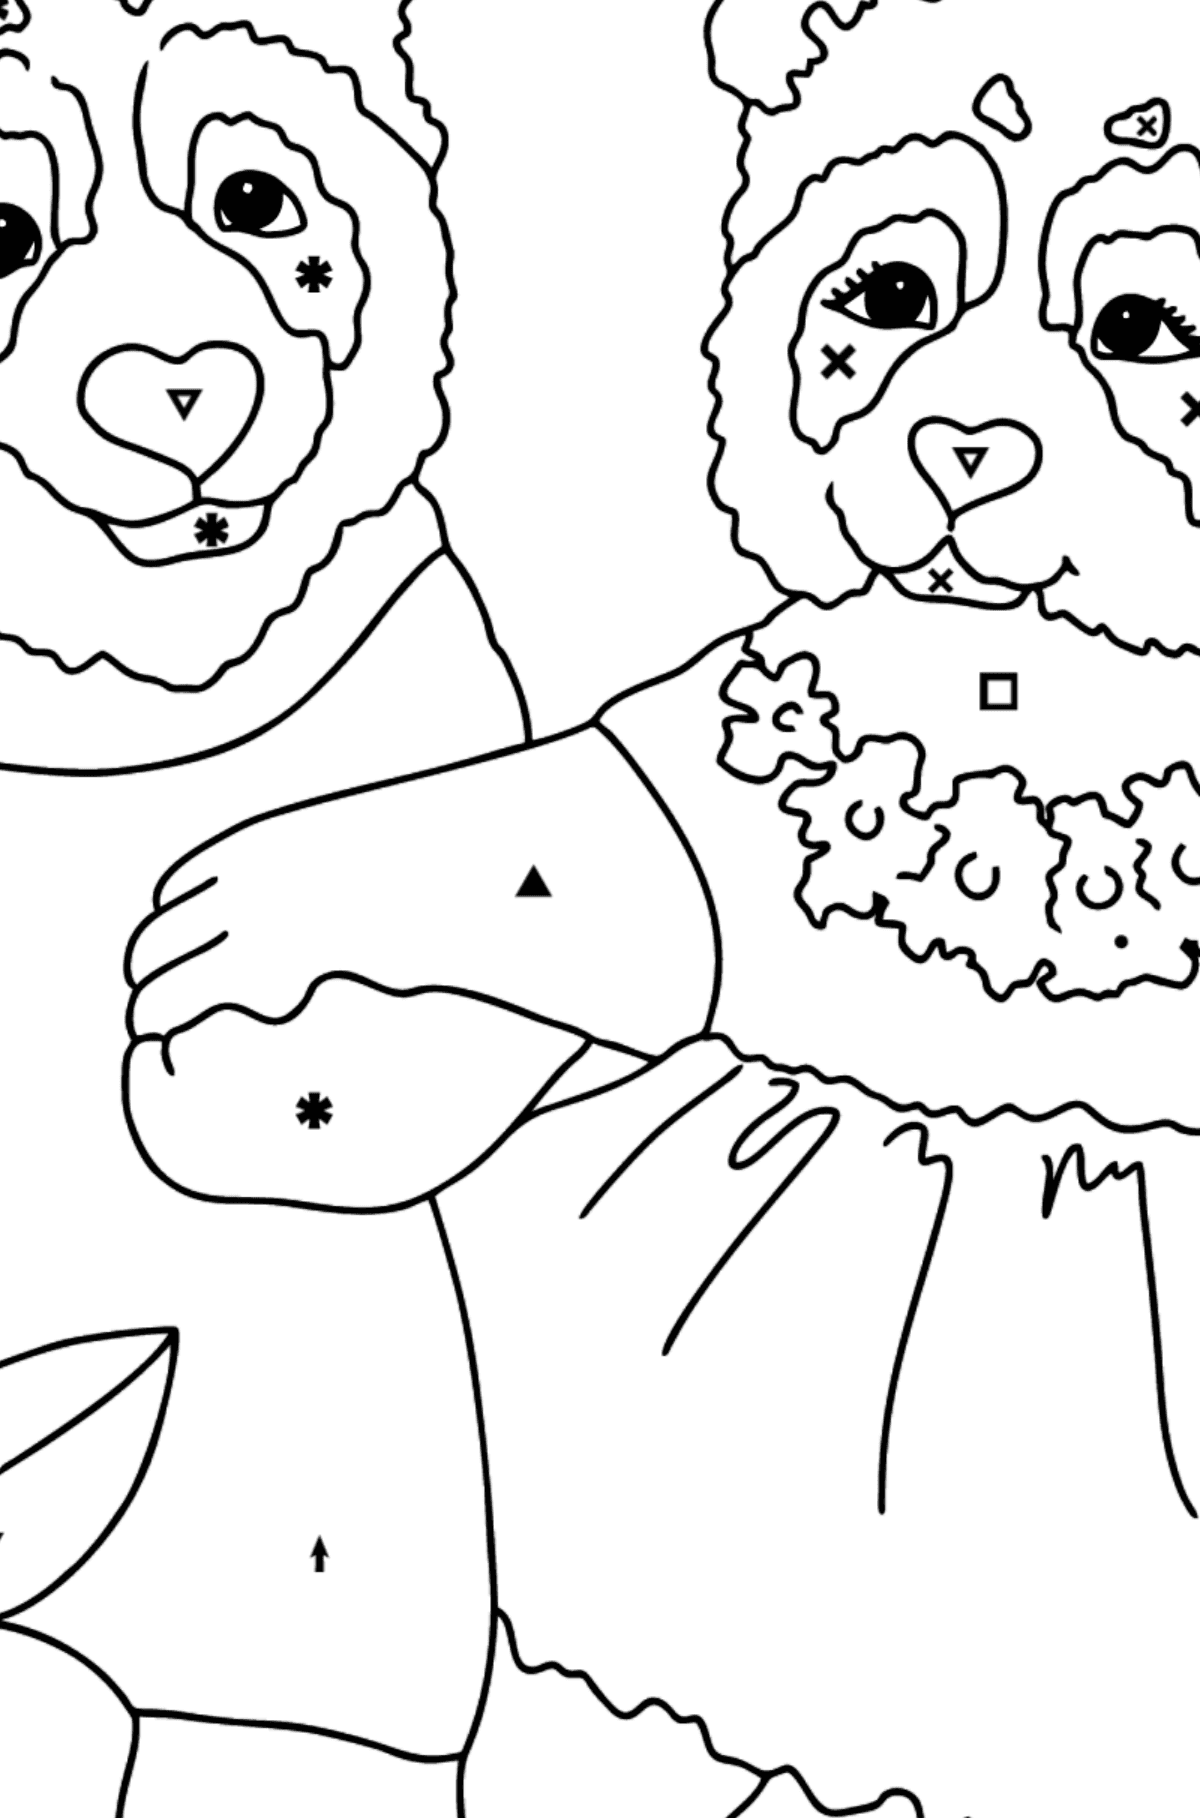 Coloring Page - Pandas are Taking a Walk - Coloring by Symbols for Kids